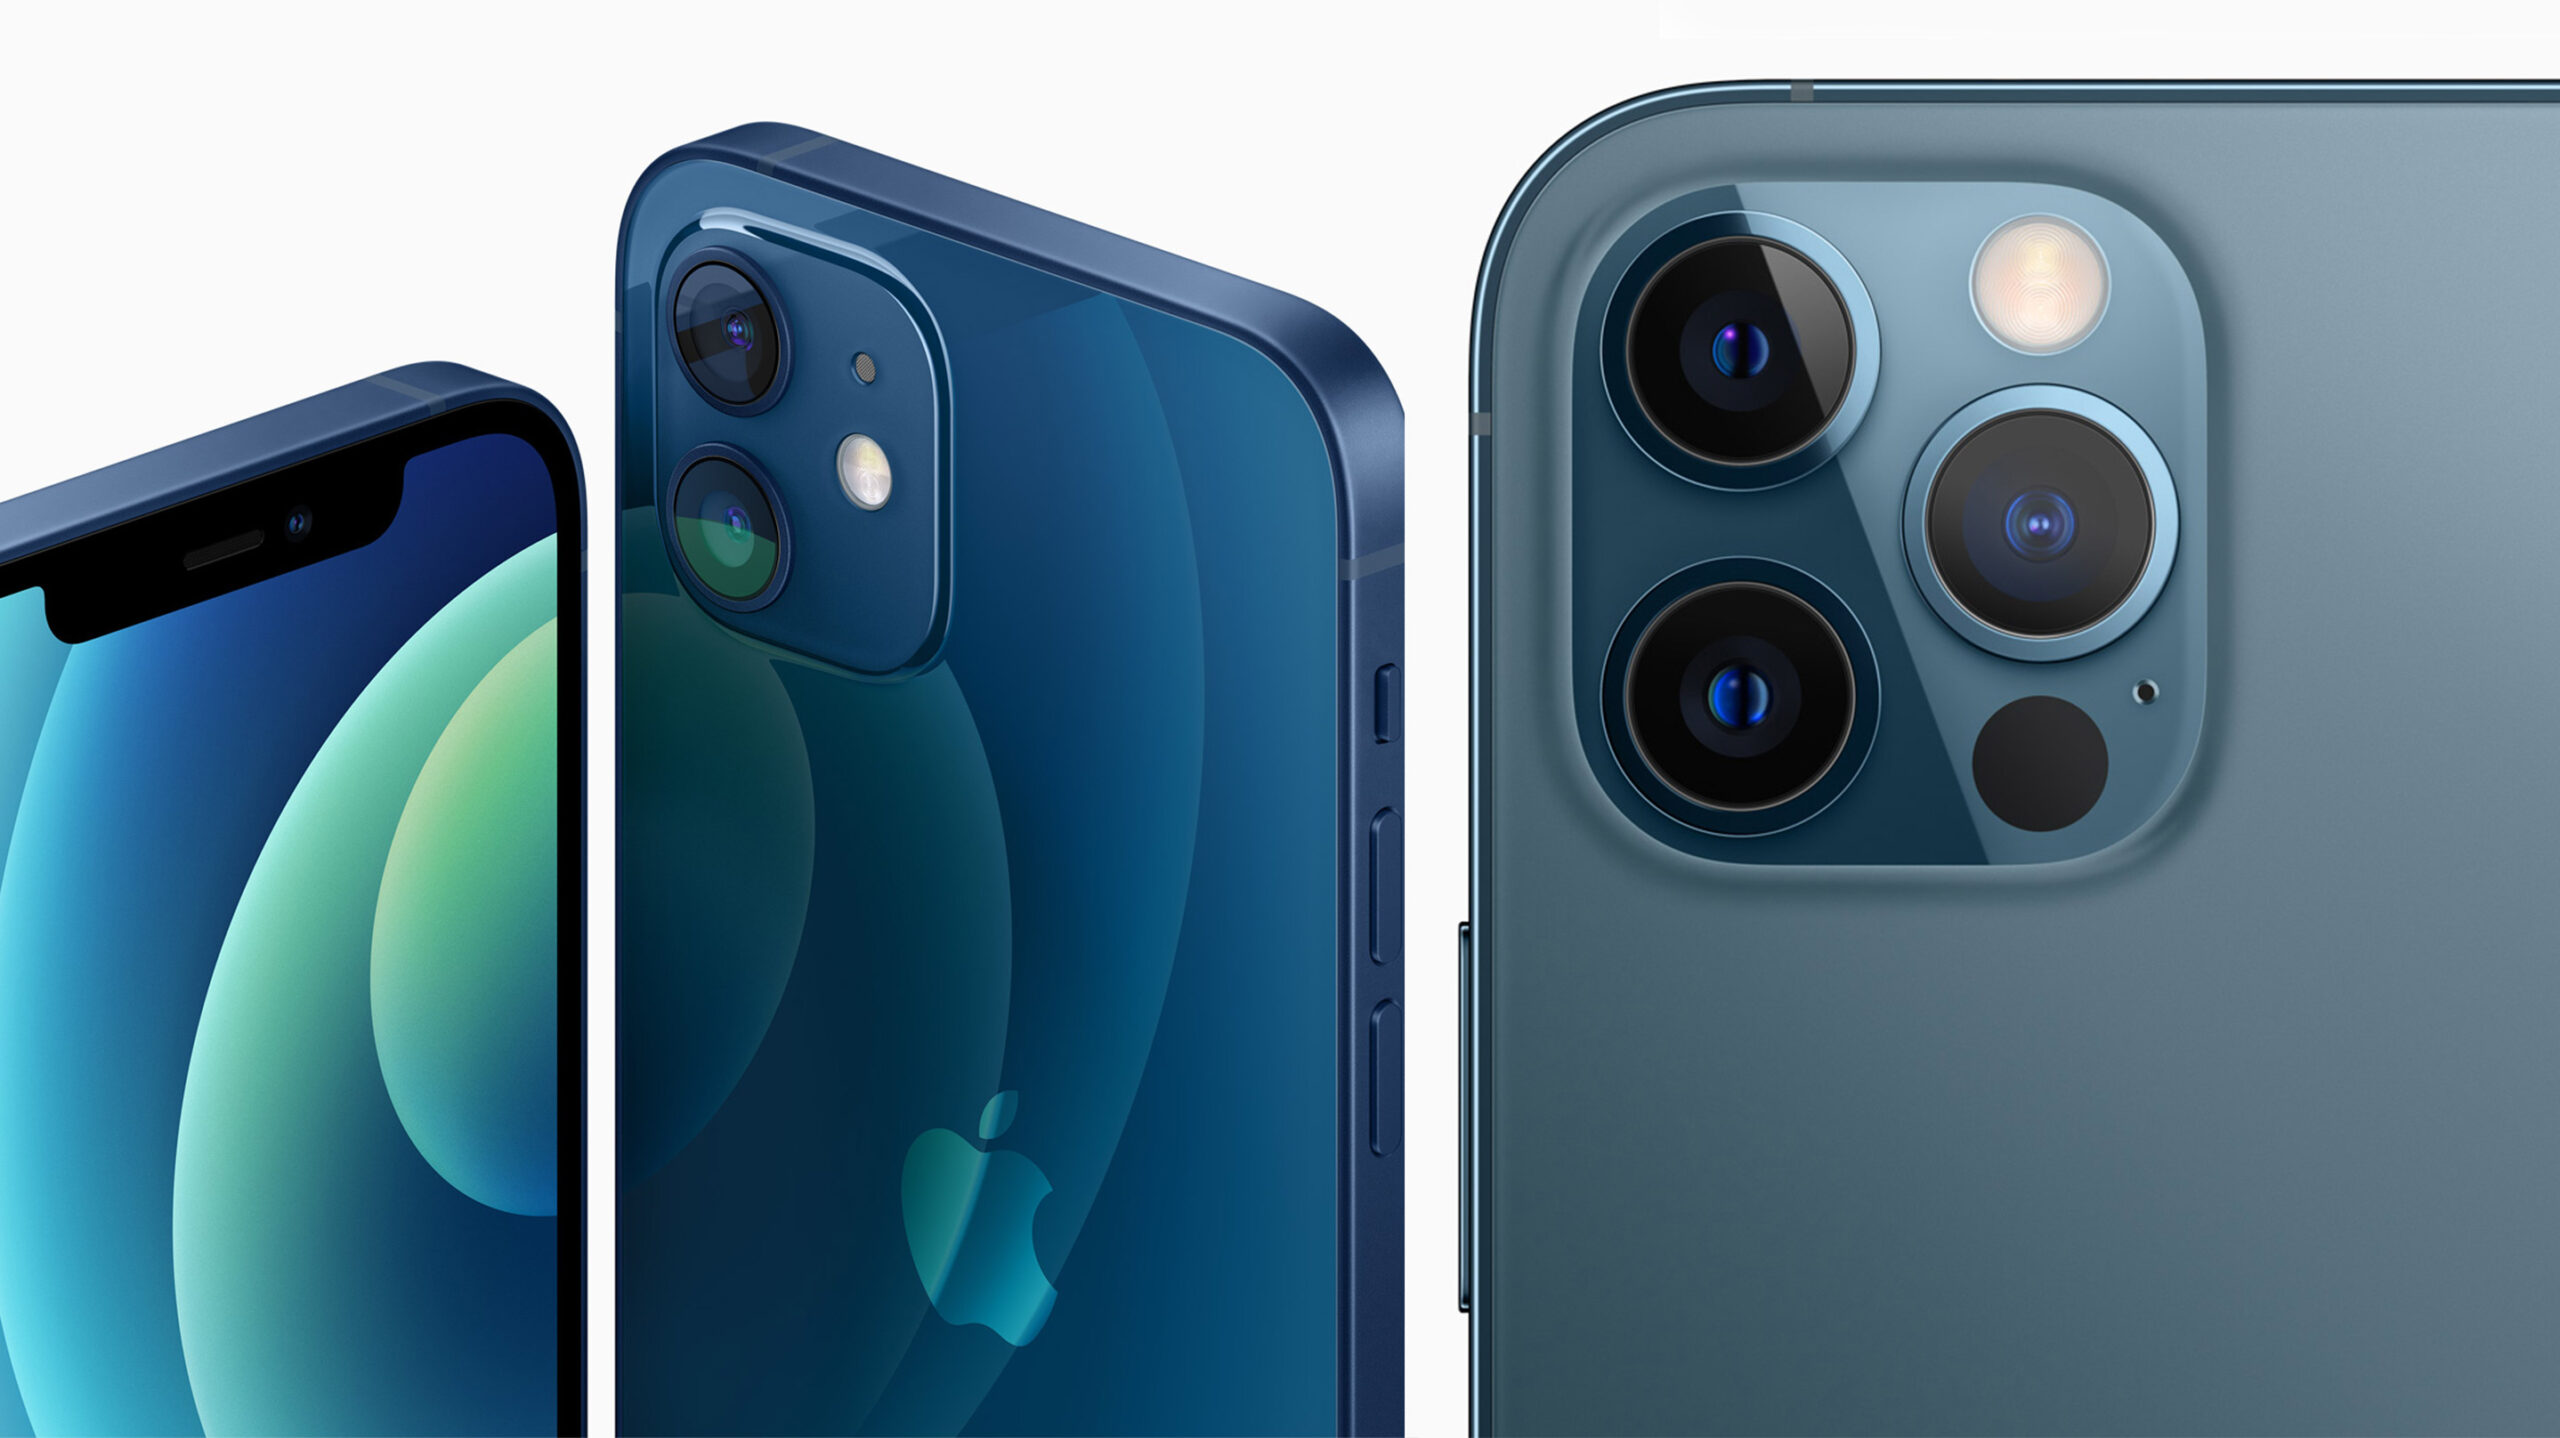 iPhone 12 and iPhone 12 Pro render